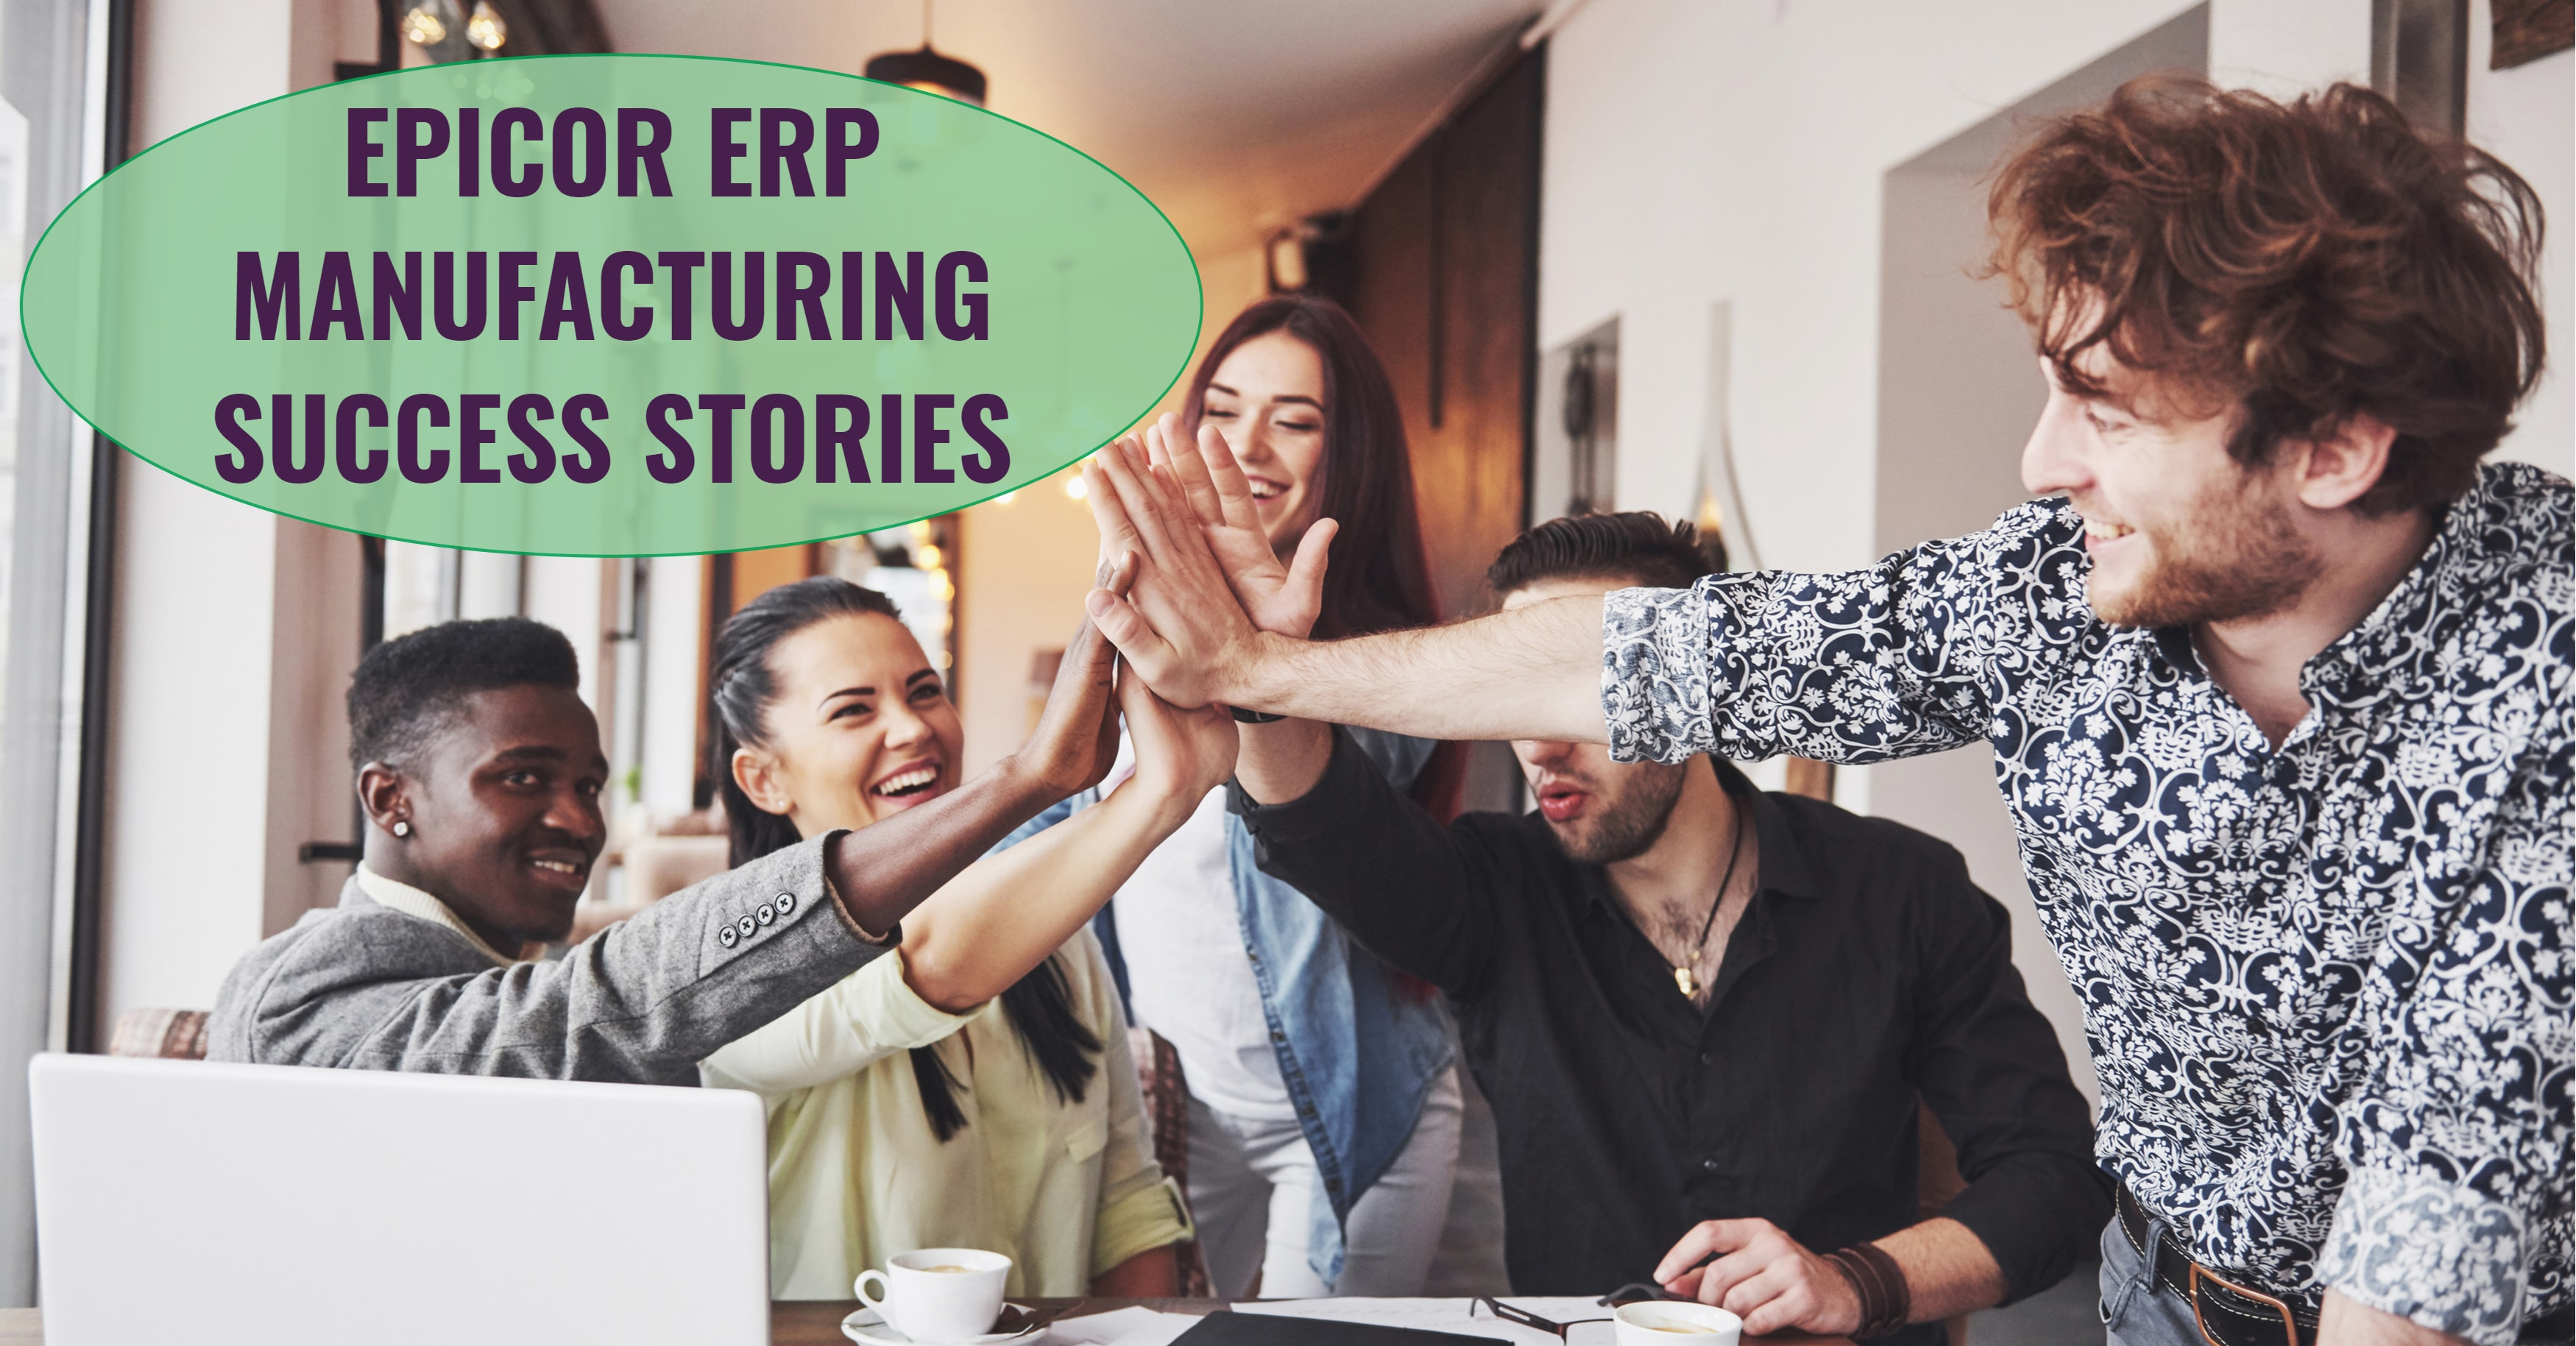 Epicor ERP Manufacturing Success Stories